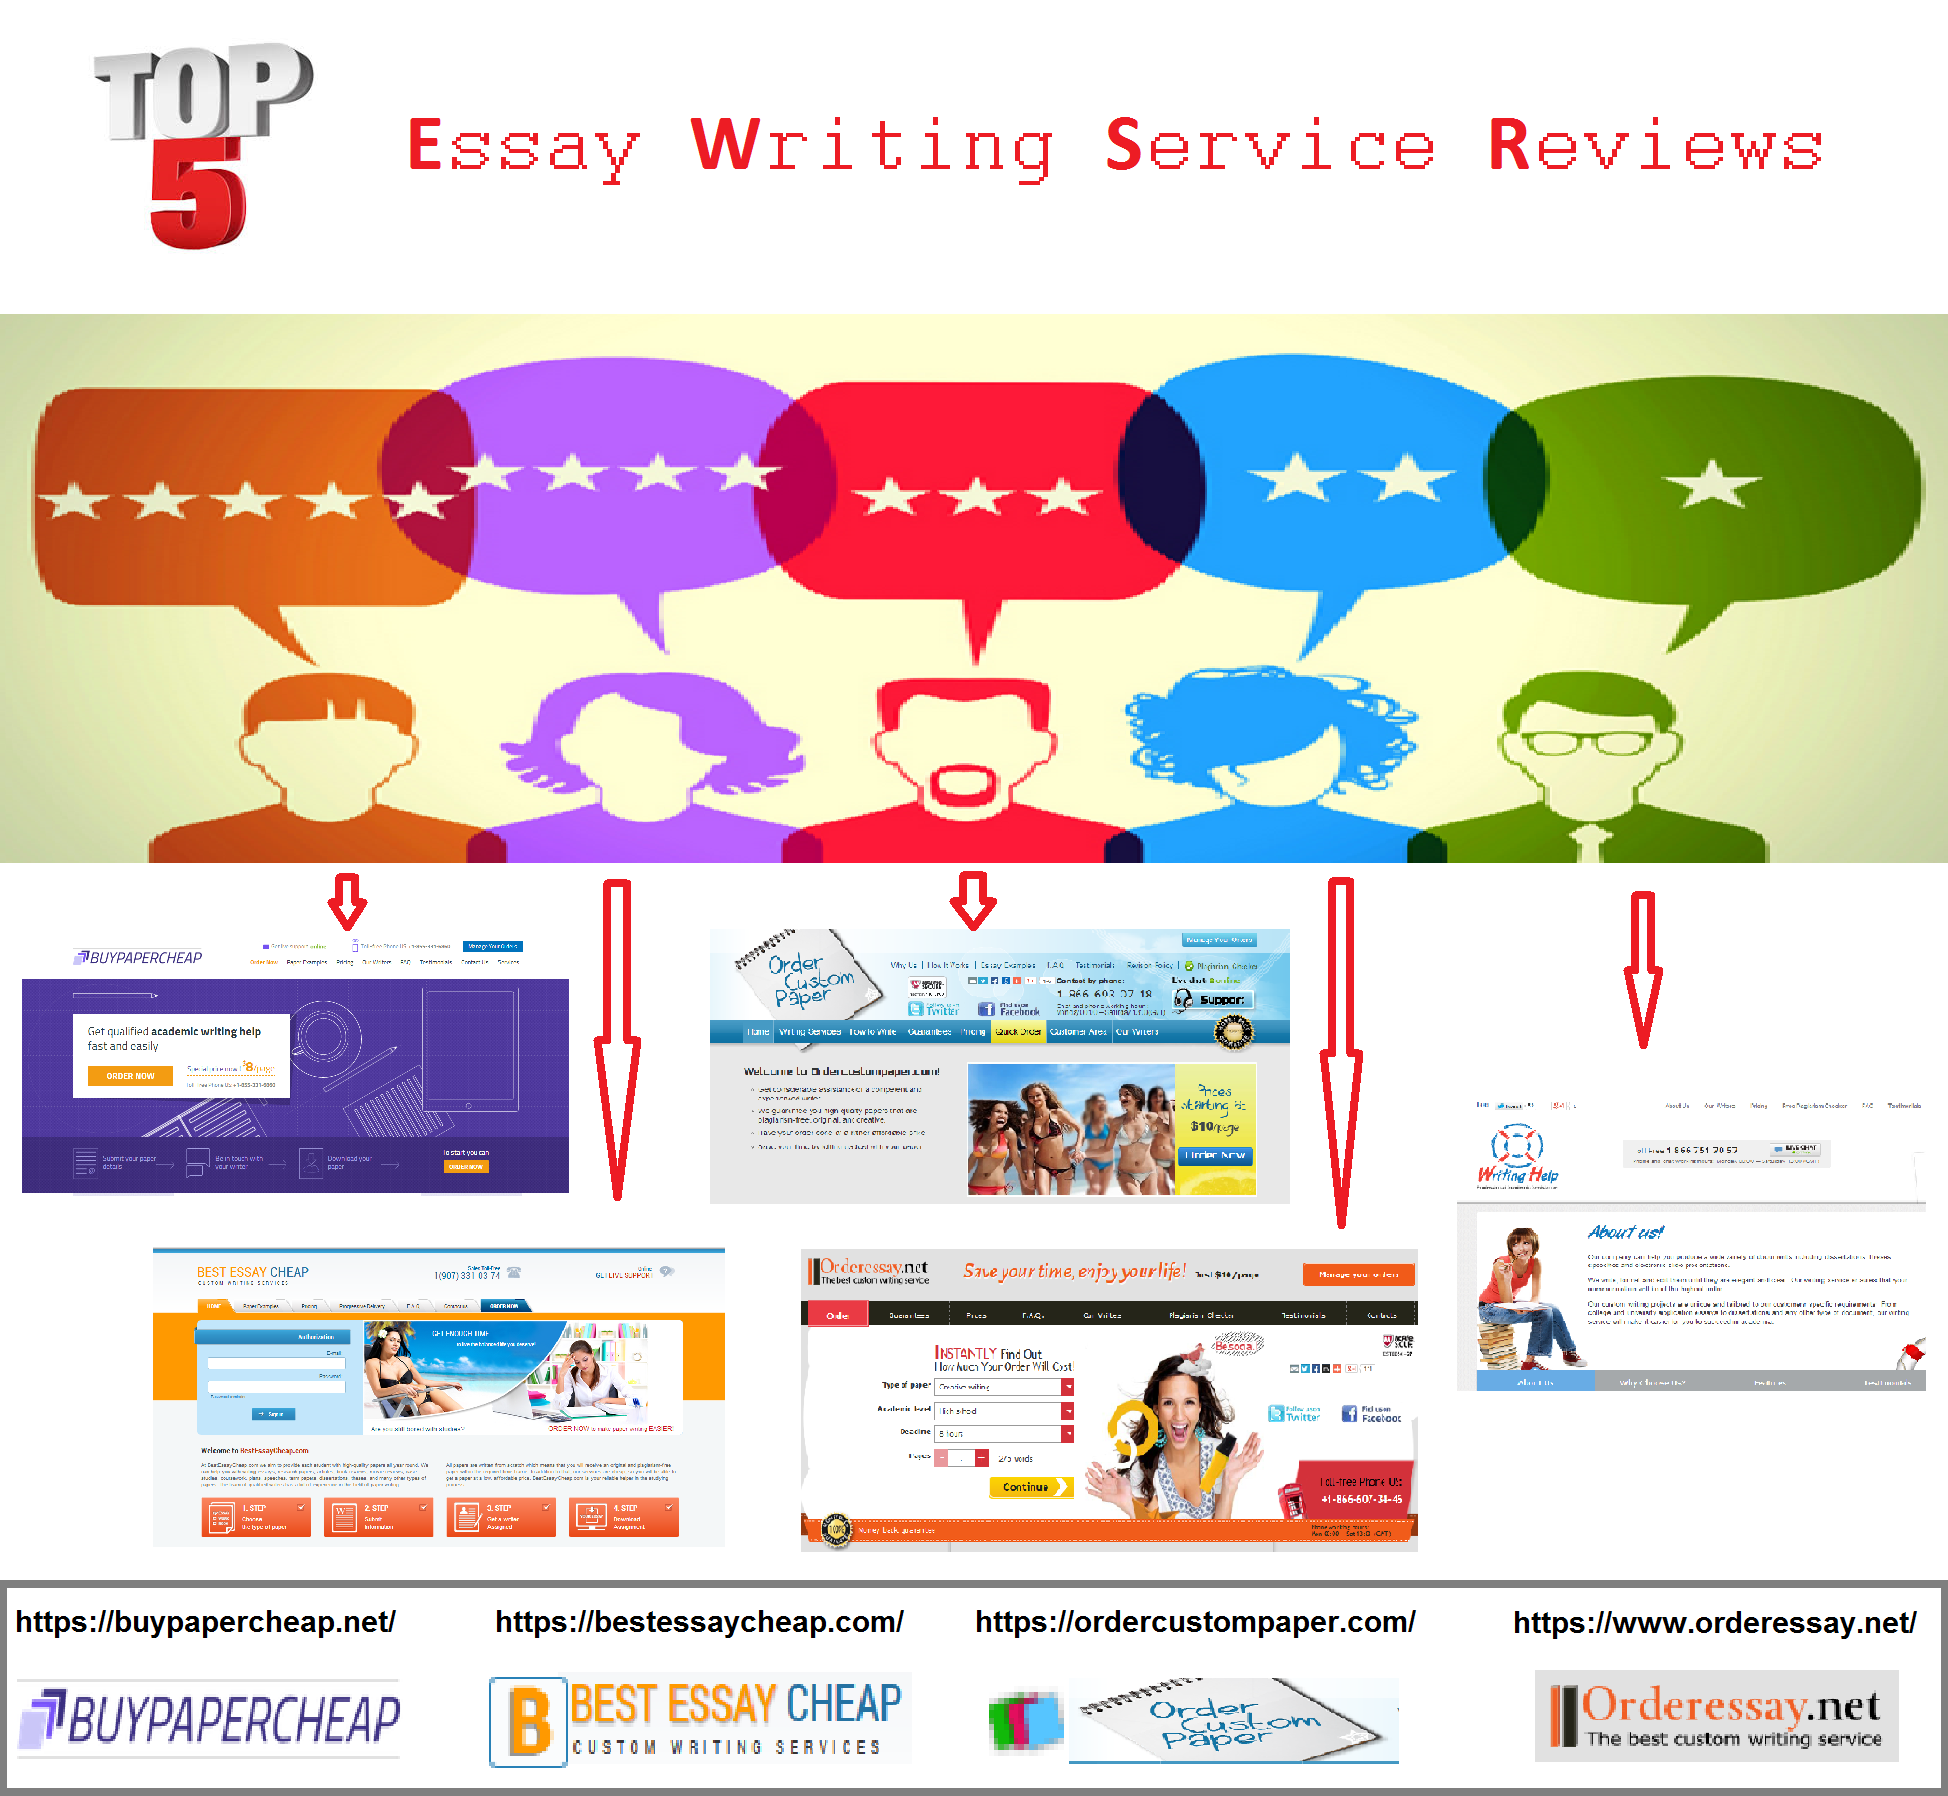 001 Essay Writing Service Reviews Custom Services From Best Essays Paper Sites Company Ideas Of Sale Discount Br Singular 2017 Top Full